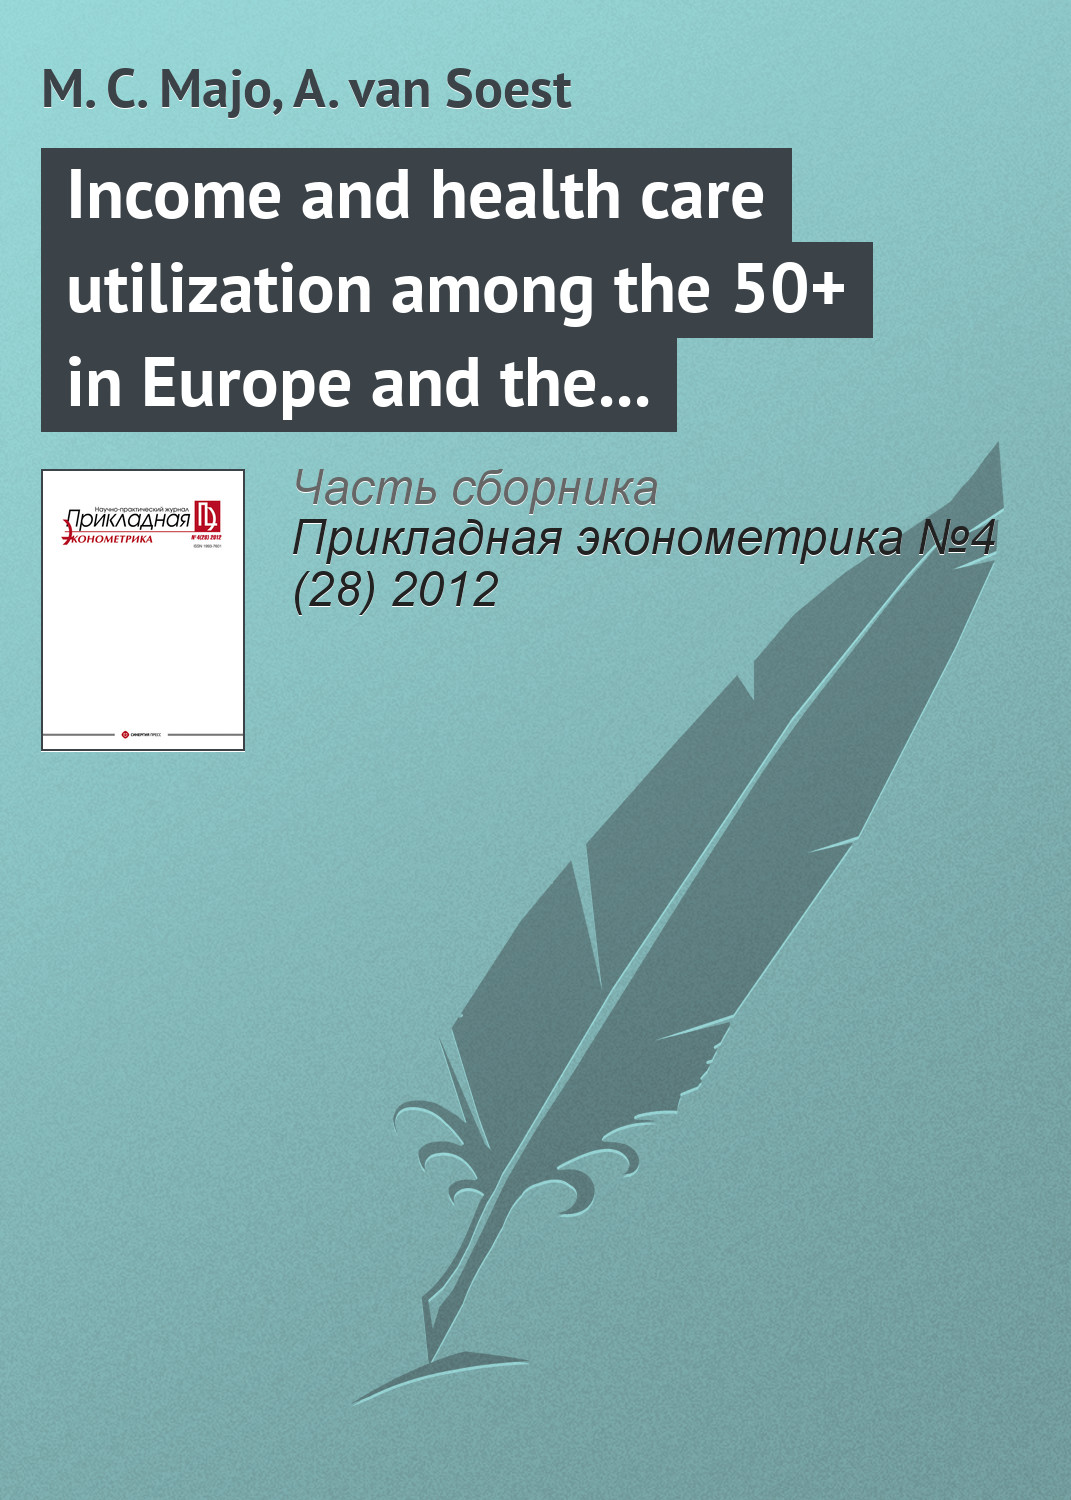 Income and health care utilization among the 50+ in Europe and the US